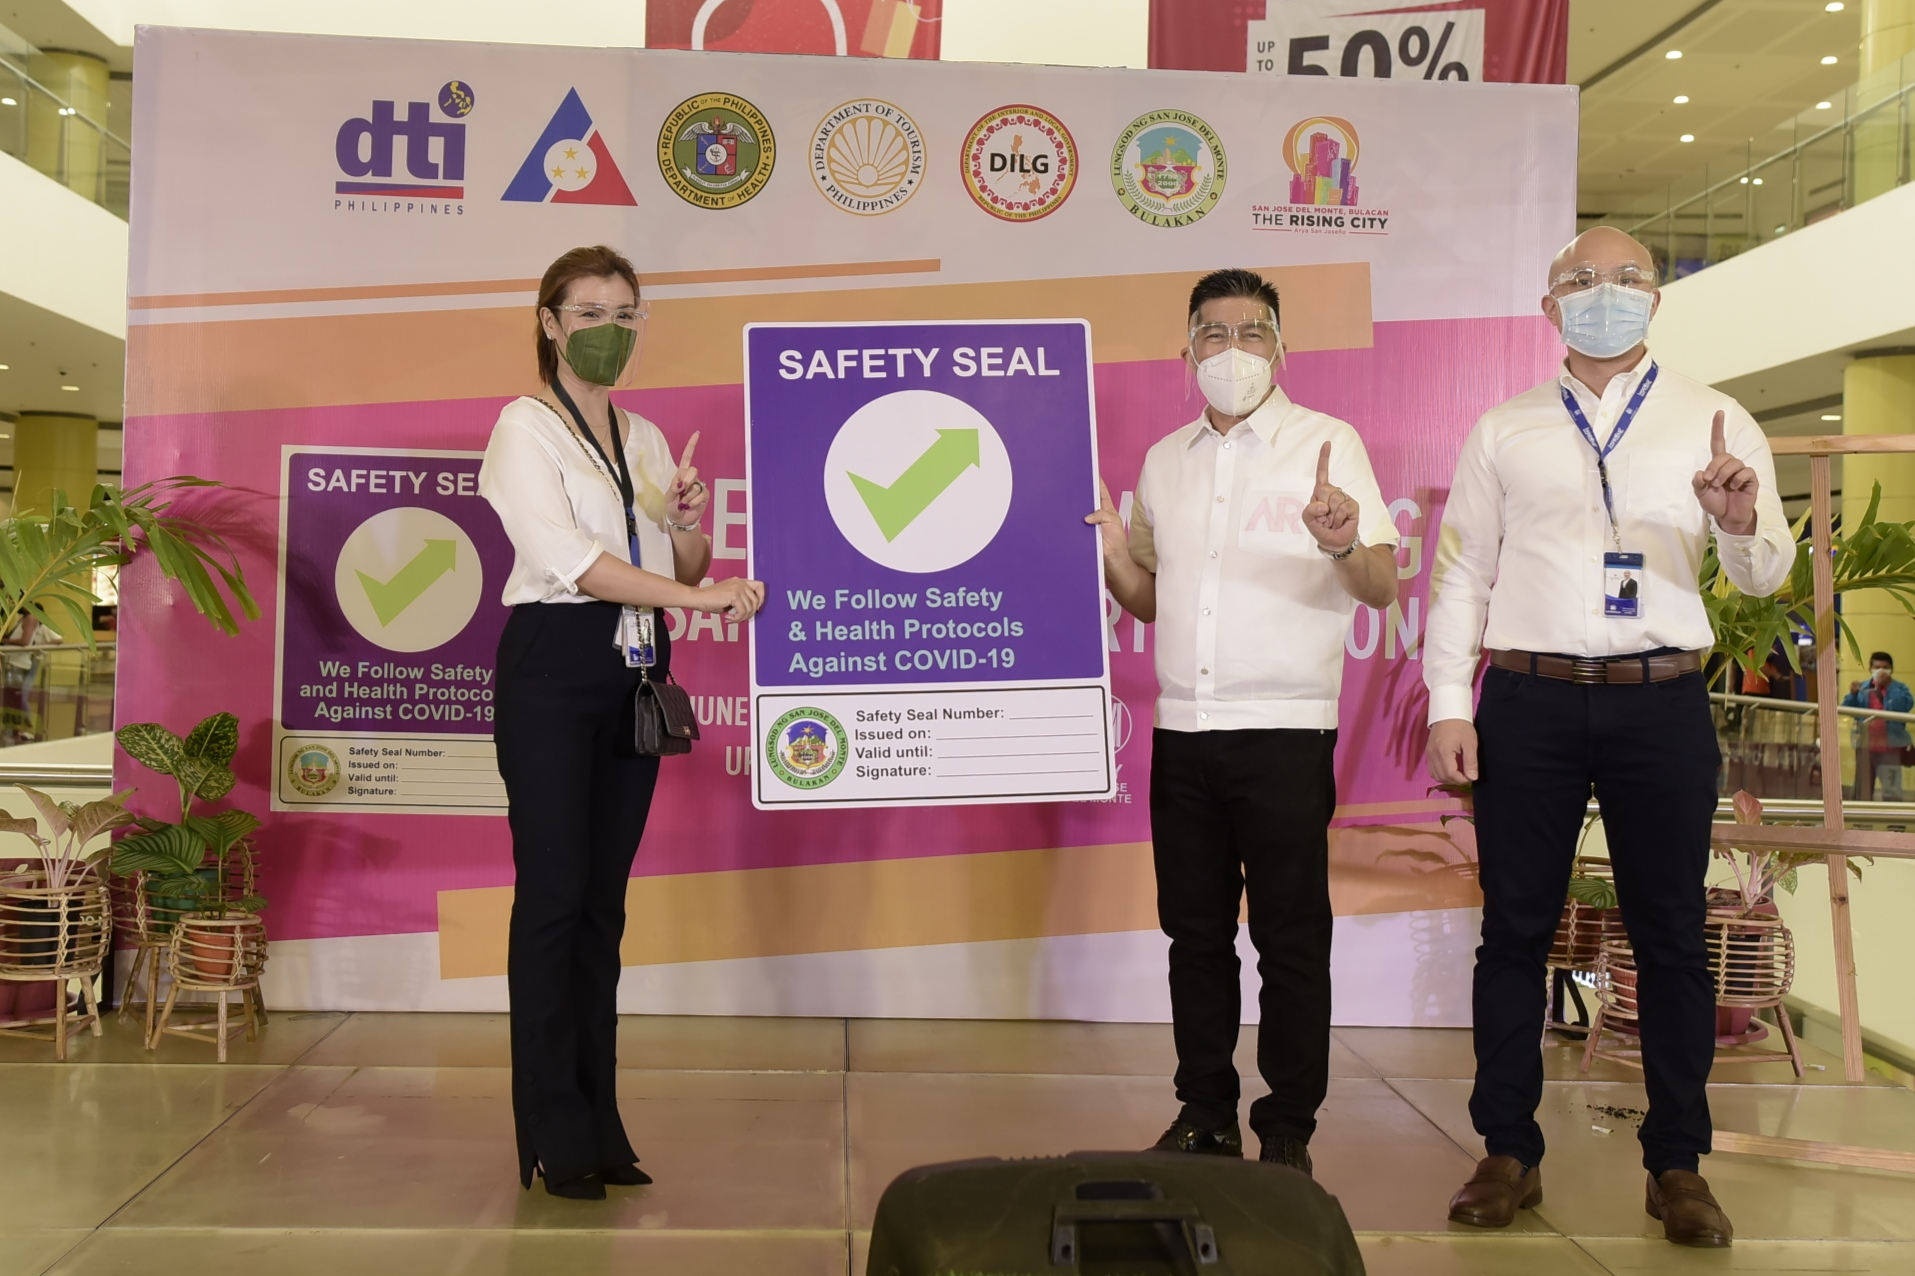 SM Malls in SJDM, Pulilan Awarded with Safety Seal Certification